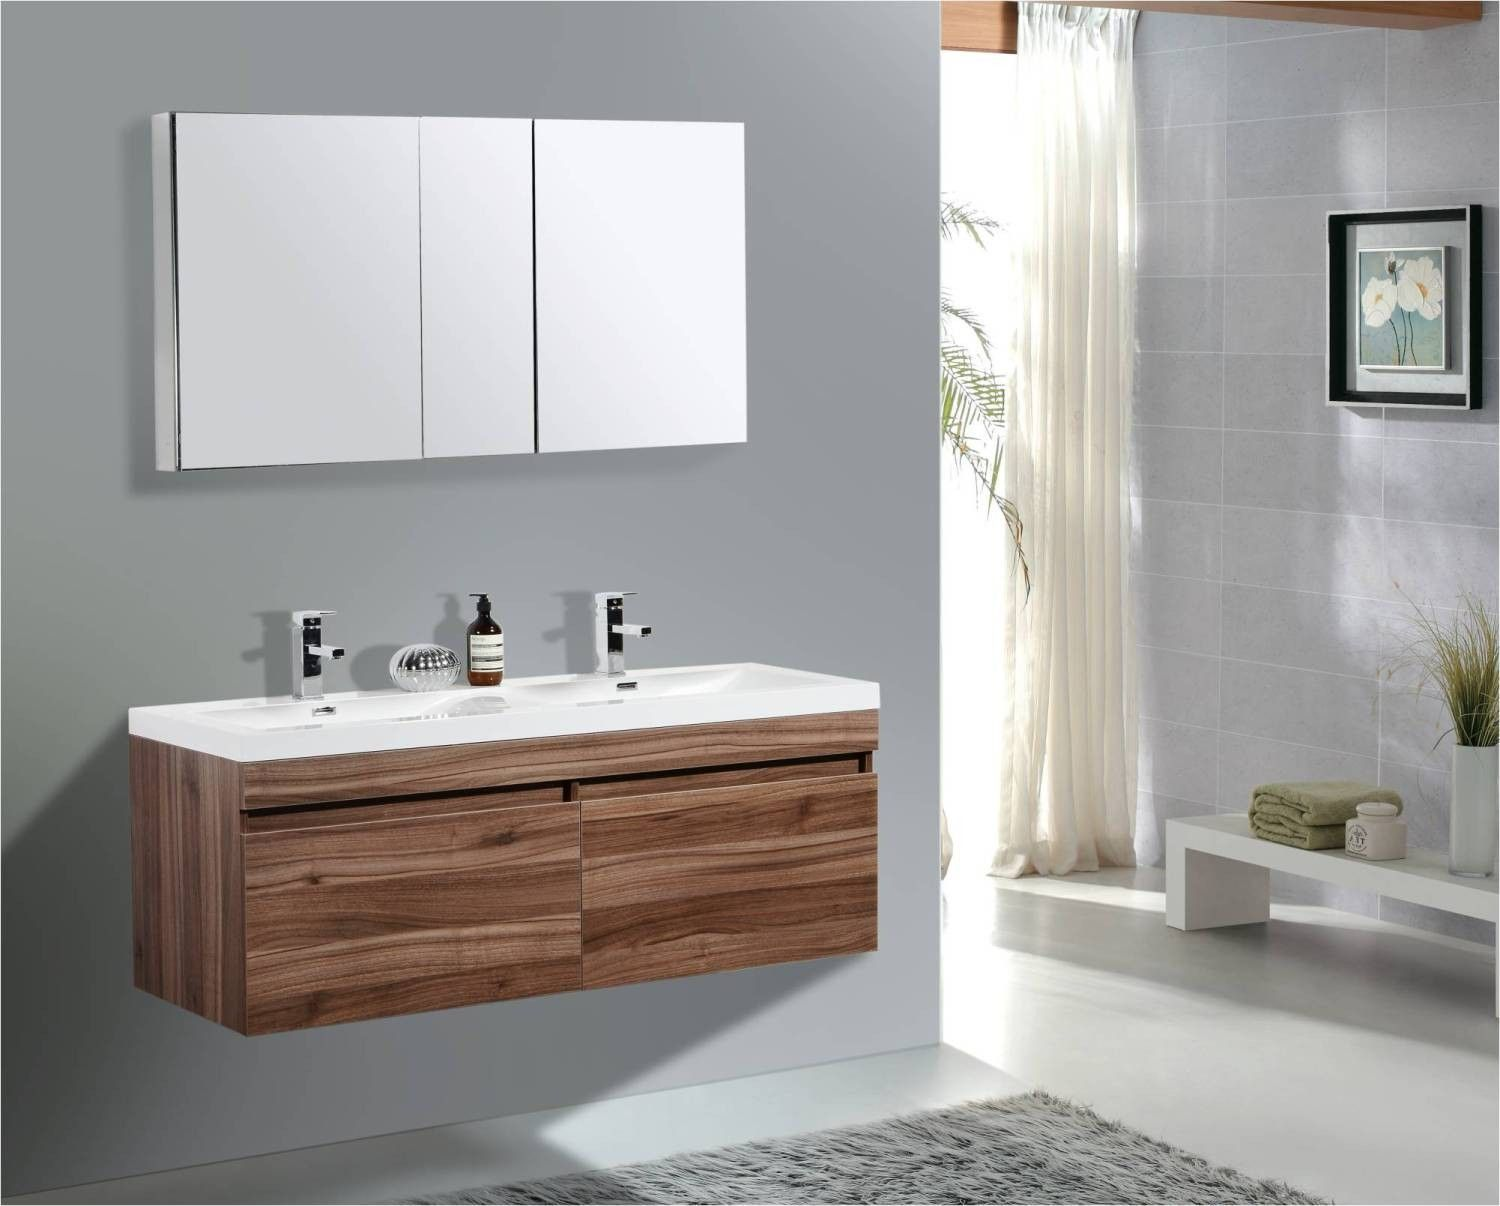 Aqua Decor Hailey 56 Inch Double Modern Bathroom Vanity Set W